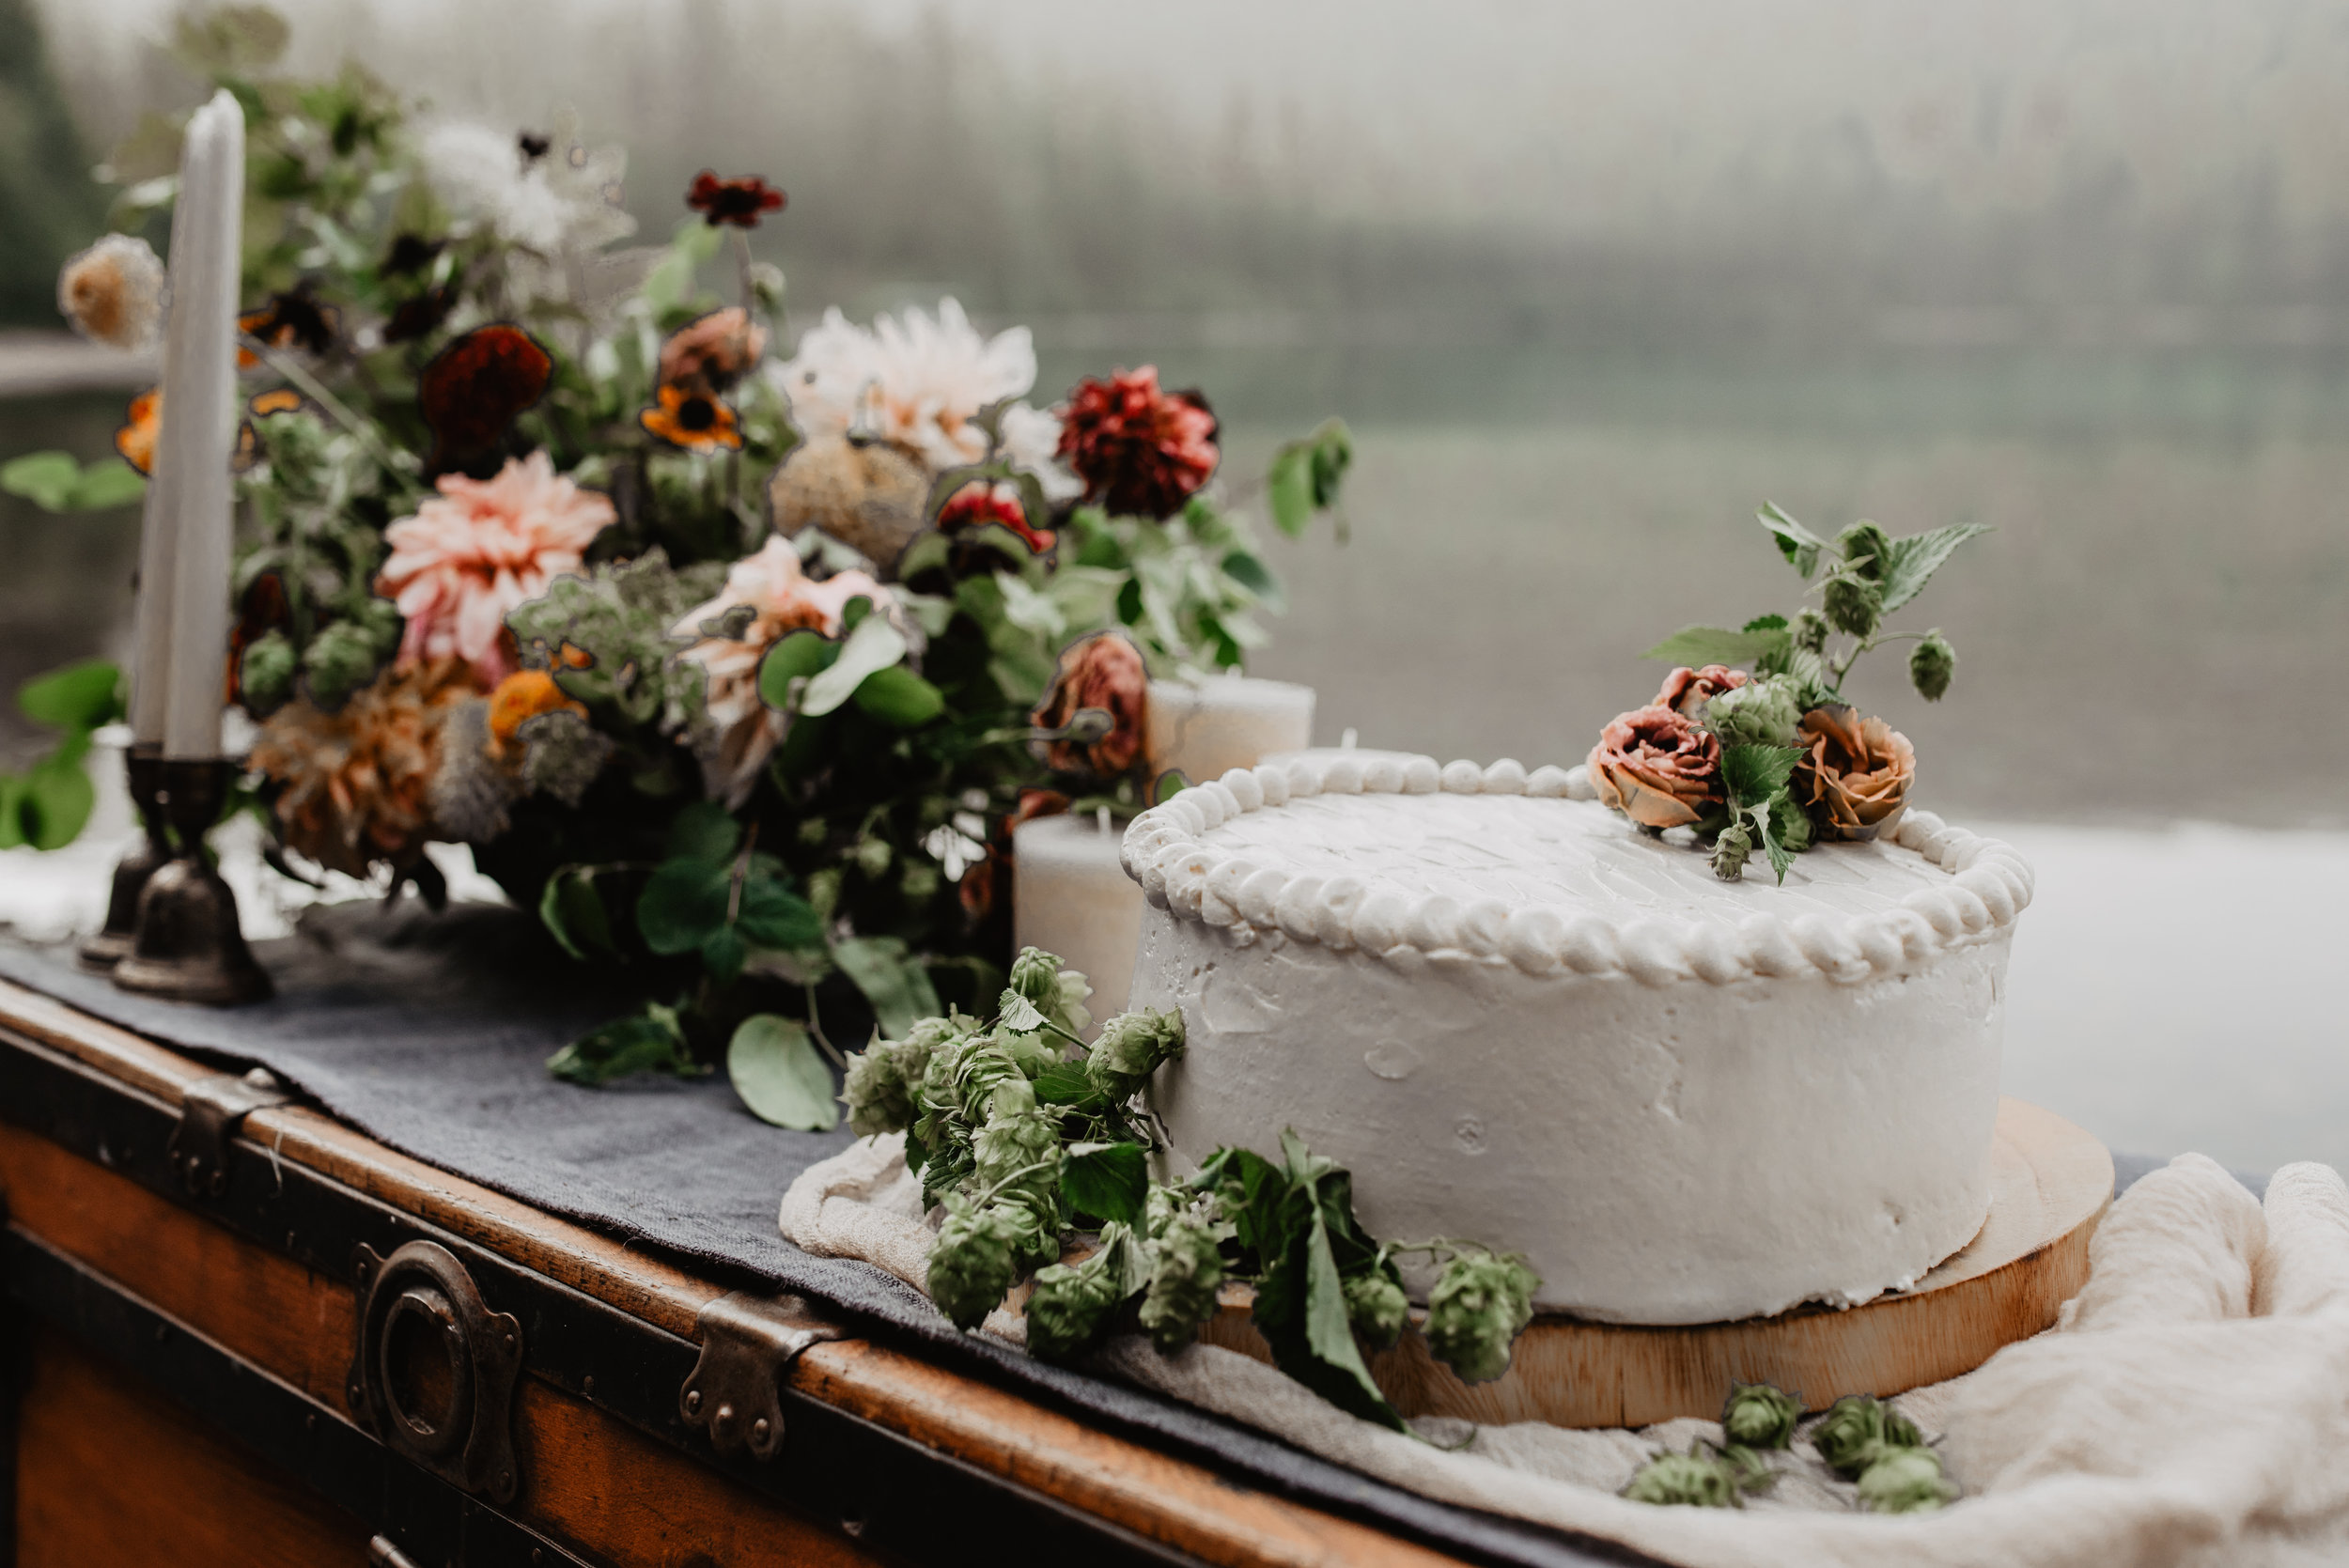 Beautiful vintage chest with displayed locally sourced sustainable flower arrangements and organic simple wedding cake on top